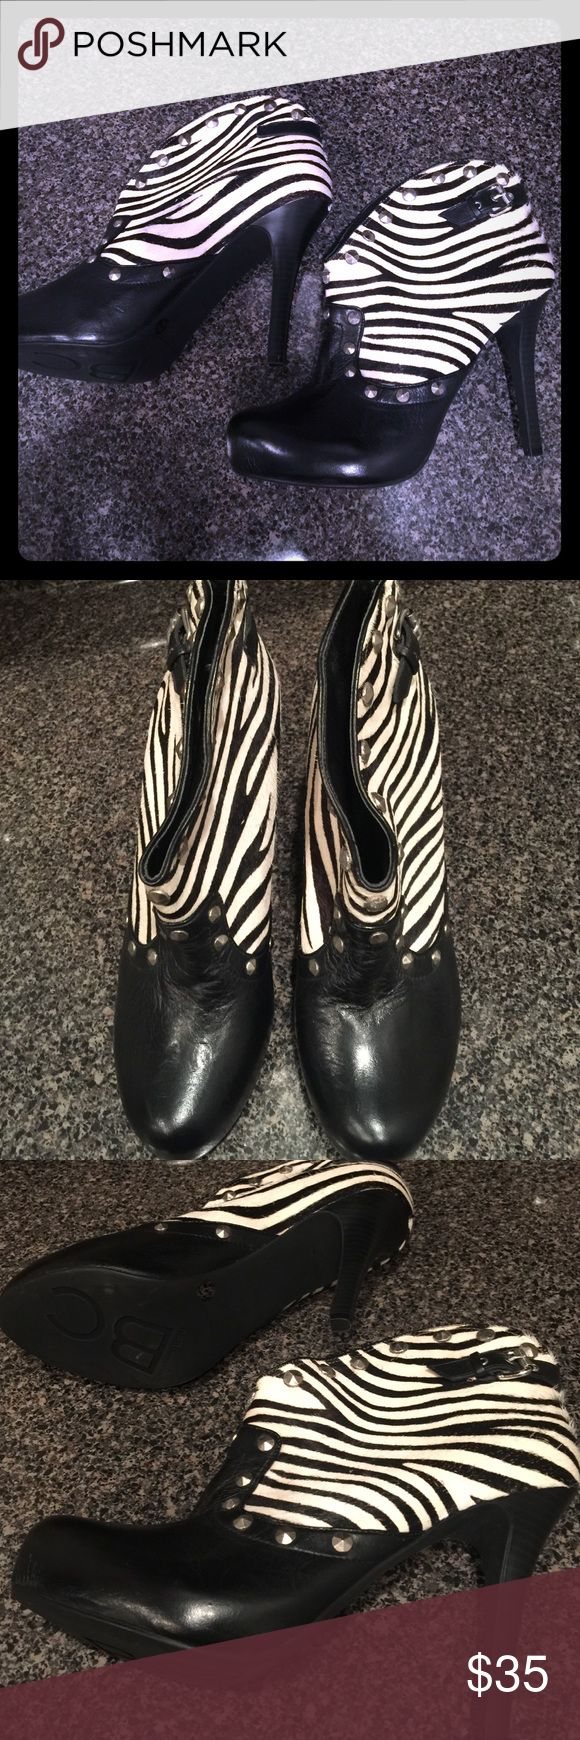 Bcbgeneration zebra heel booties studded Great condition. BCBGeneration Shoes Heeled Boots